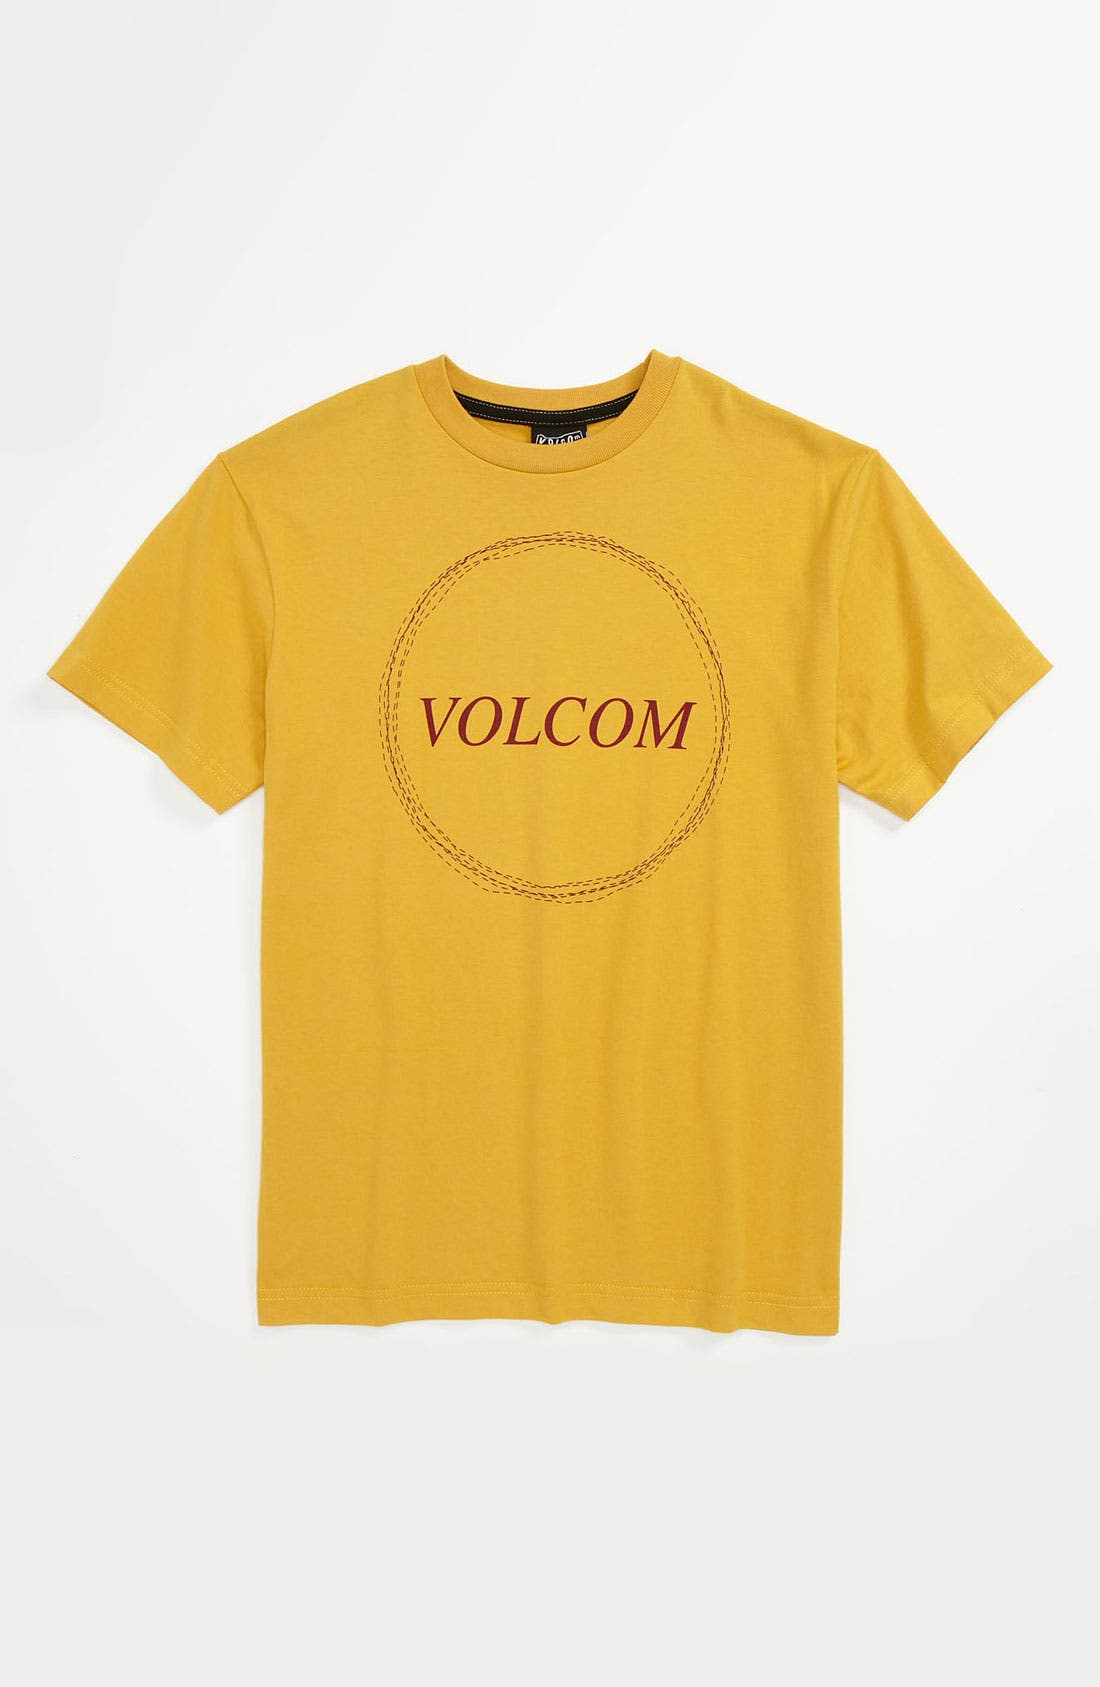 Main Image - Volcom 'Cleaner' T-Shirt (Big Boys)